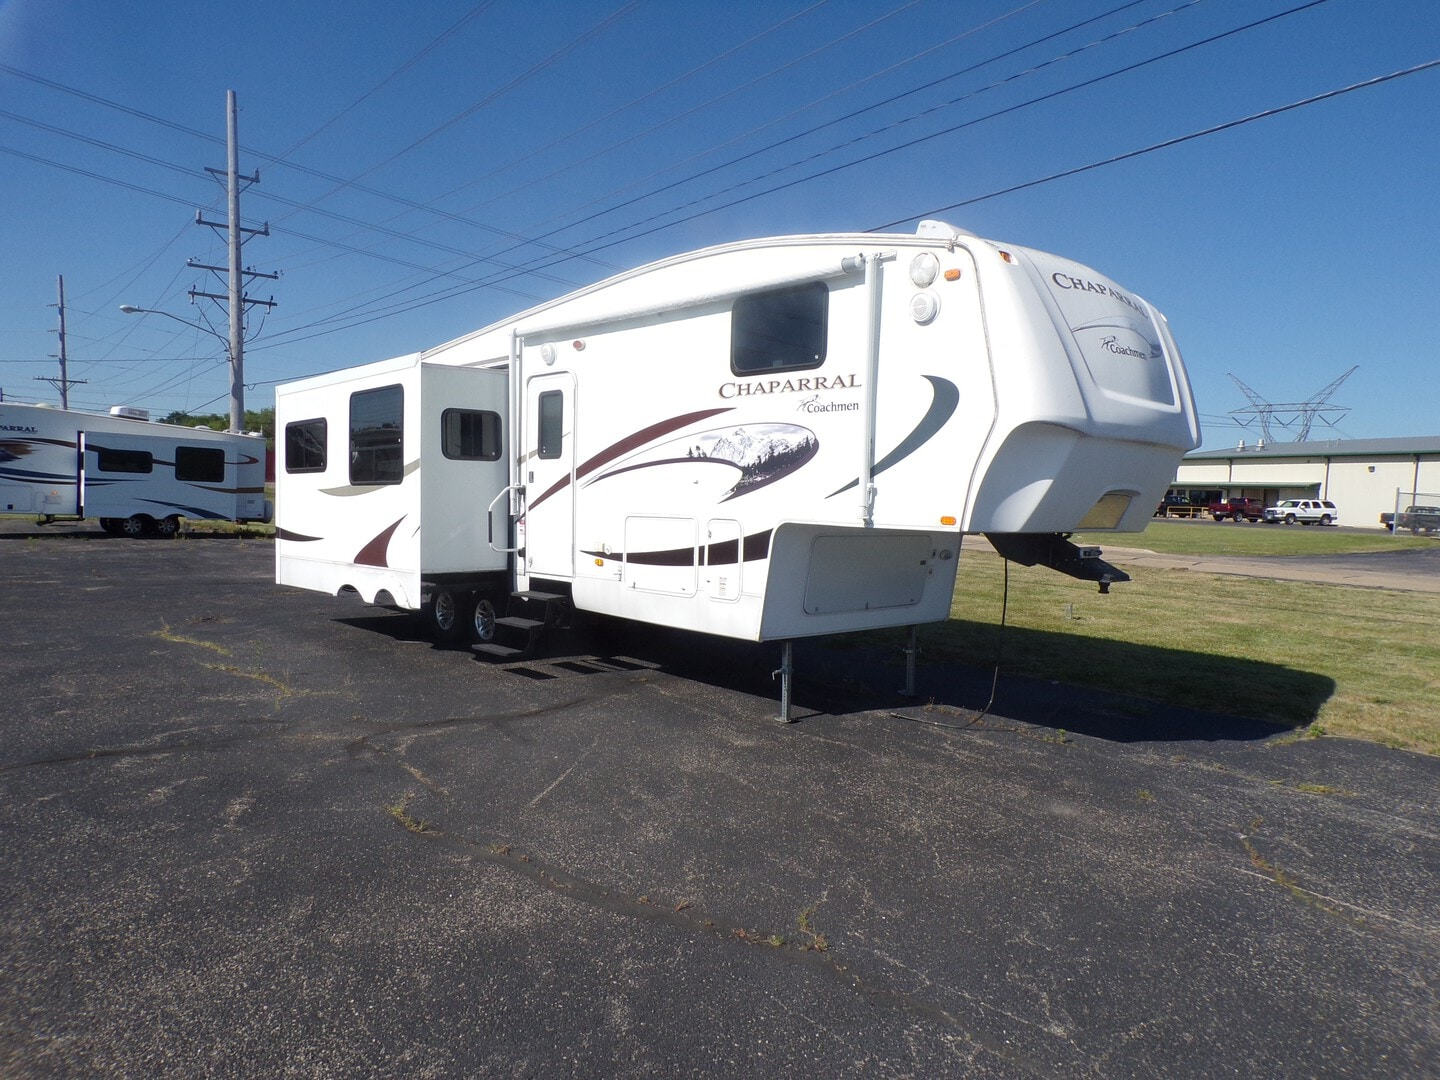 Used, 2008, Chaparral by Coachmen, 322RLDS, Fifth Wheels